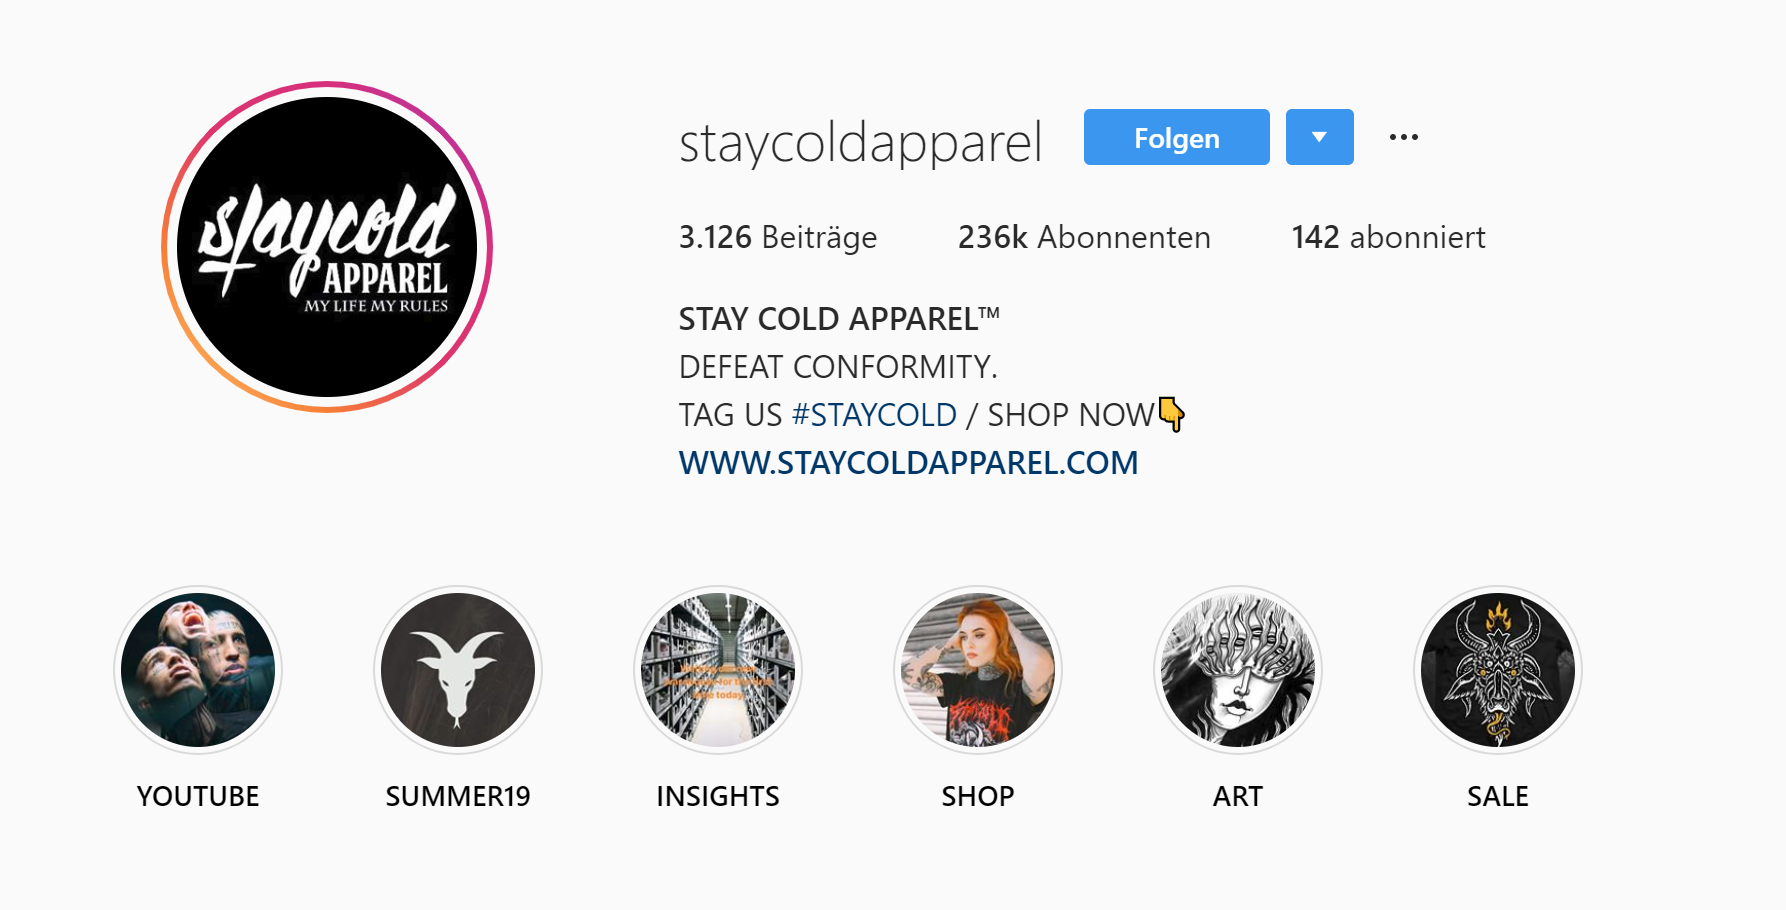 stay cold apparel hashtag marke